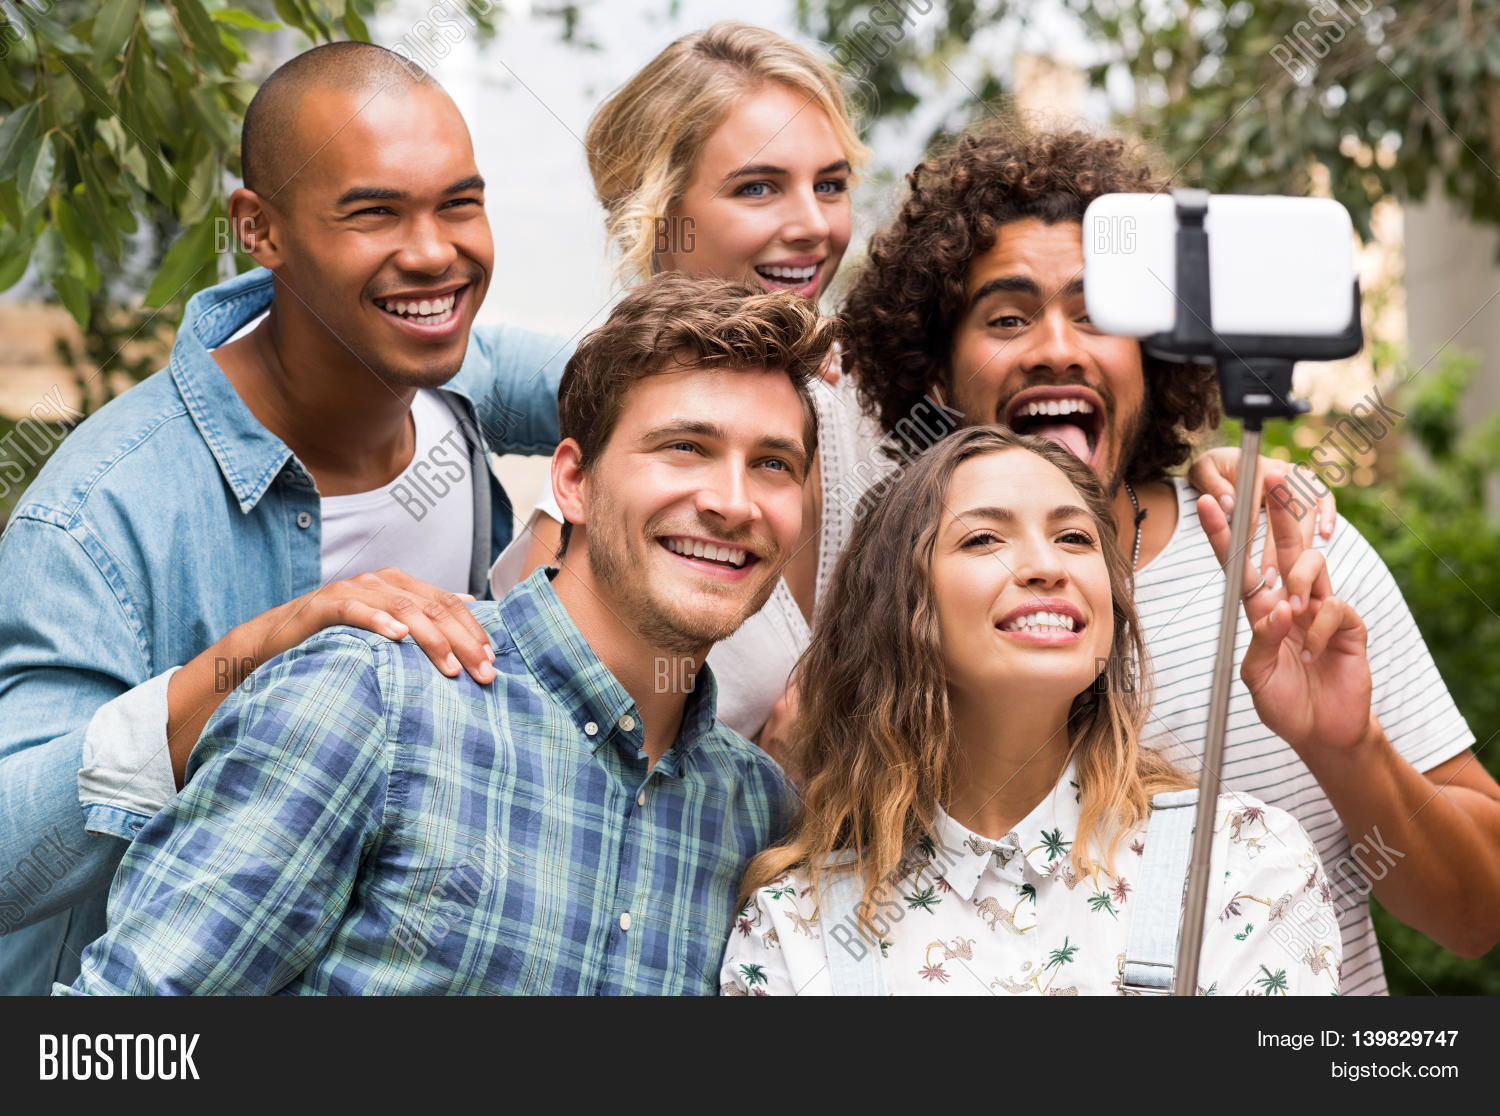 1fe8800e0de25 Happy friends with funny face taking a photo with a selfie stick. Group of  smiling